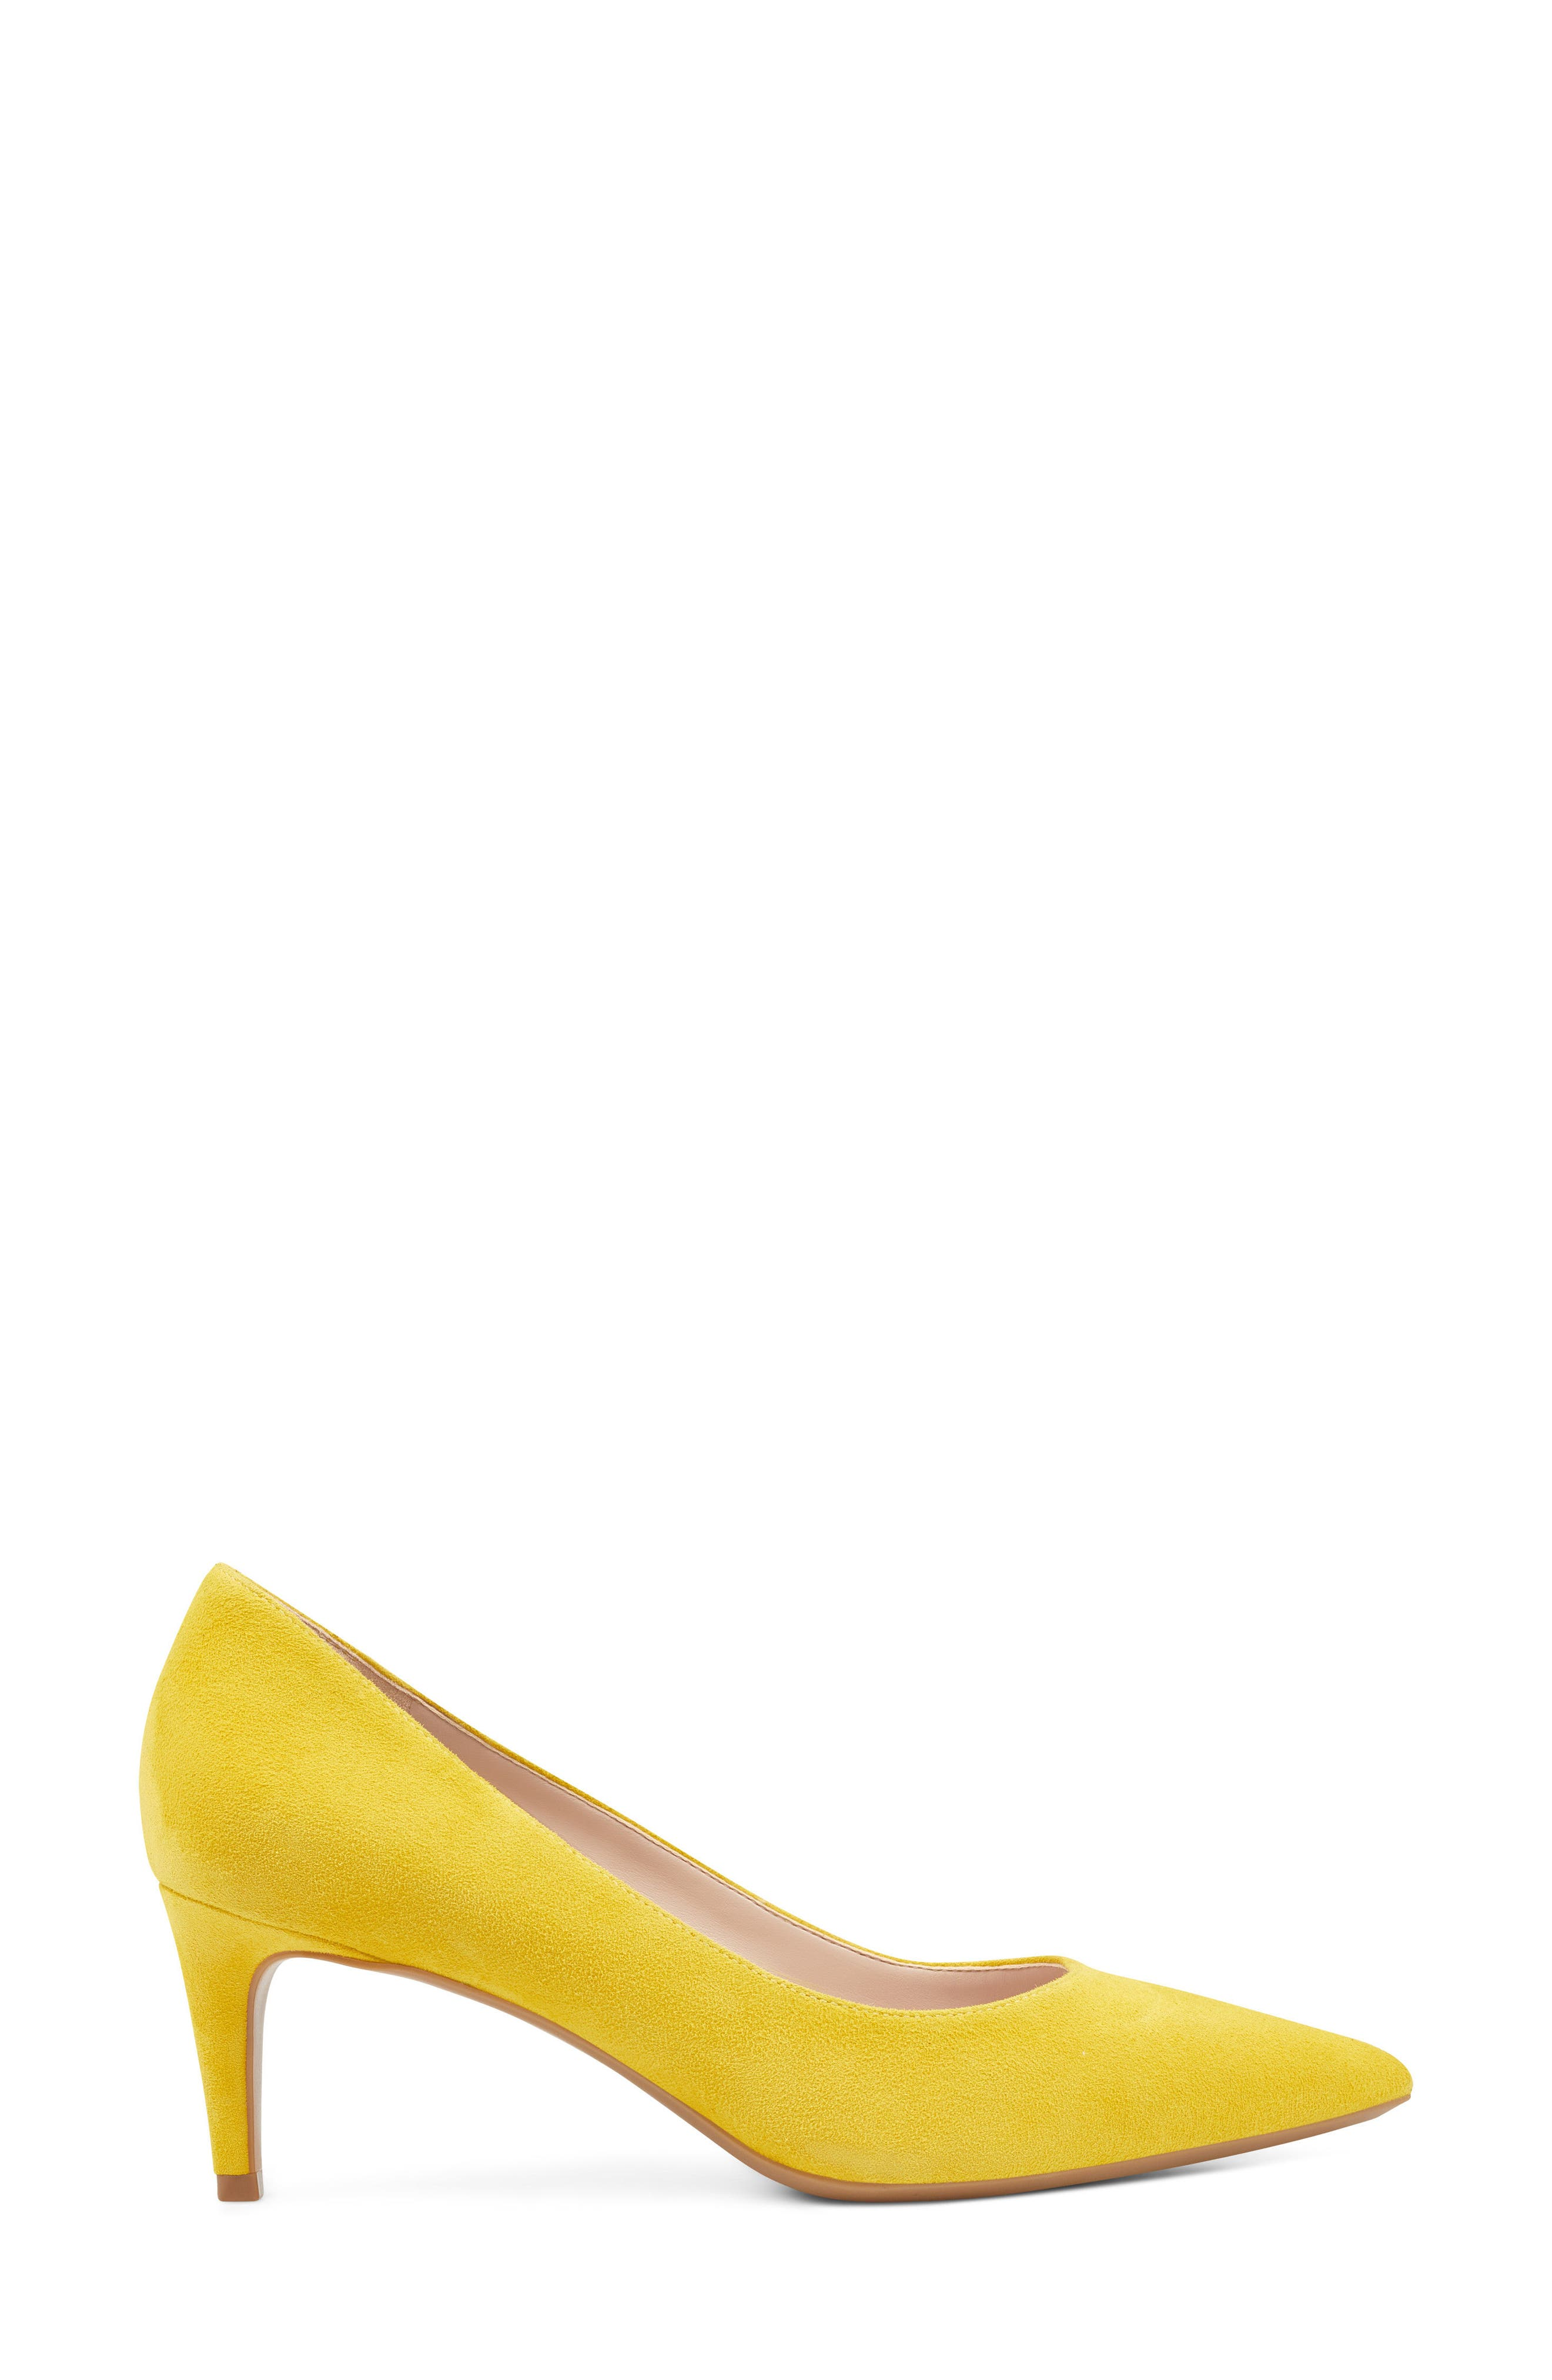 Soho Pointy Toe Pump,                             Alternate thumbnail 22, color,